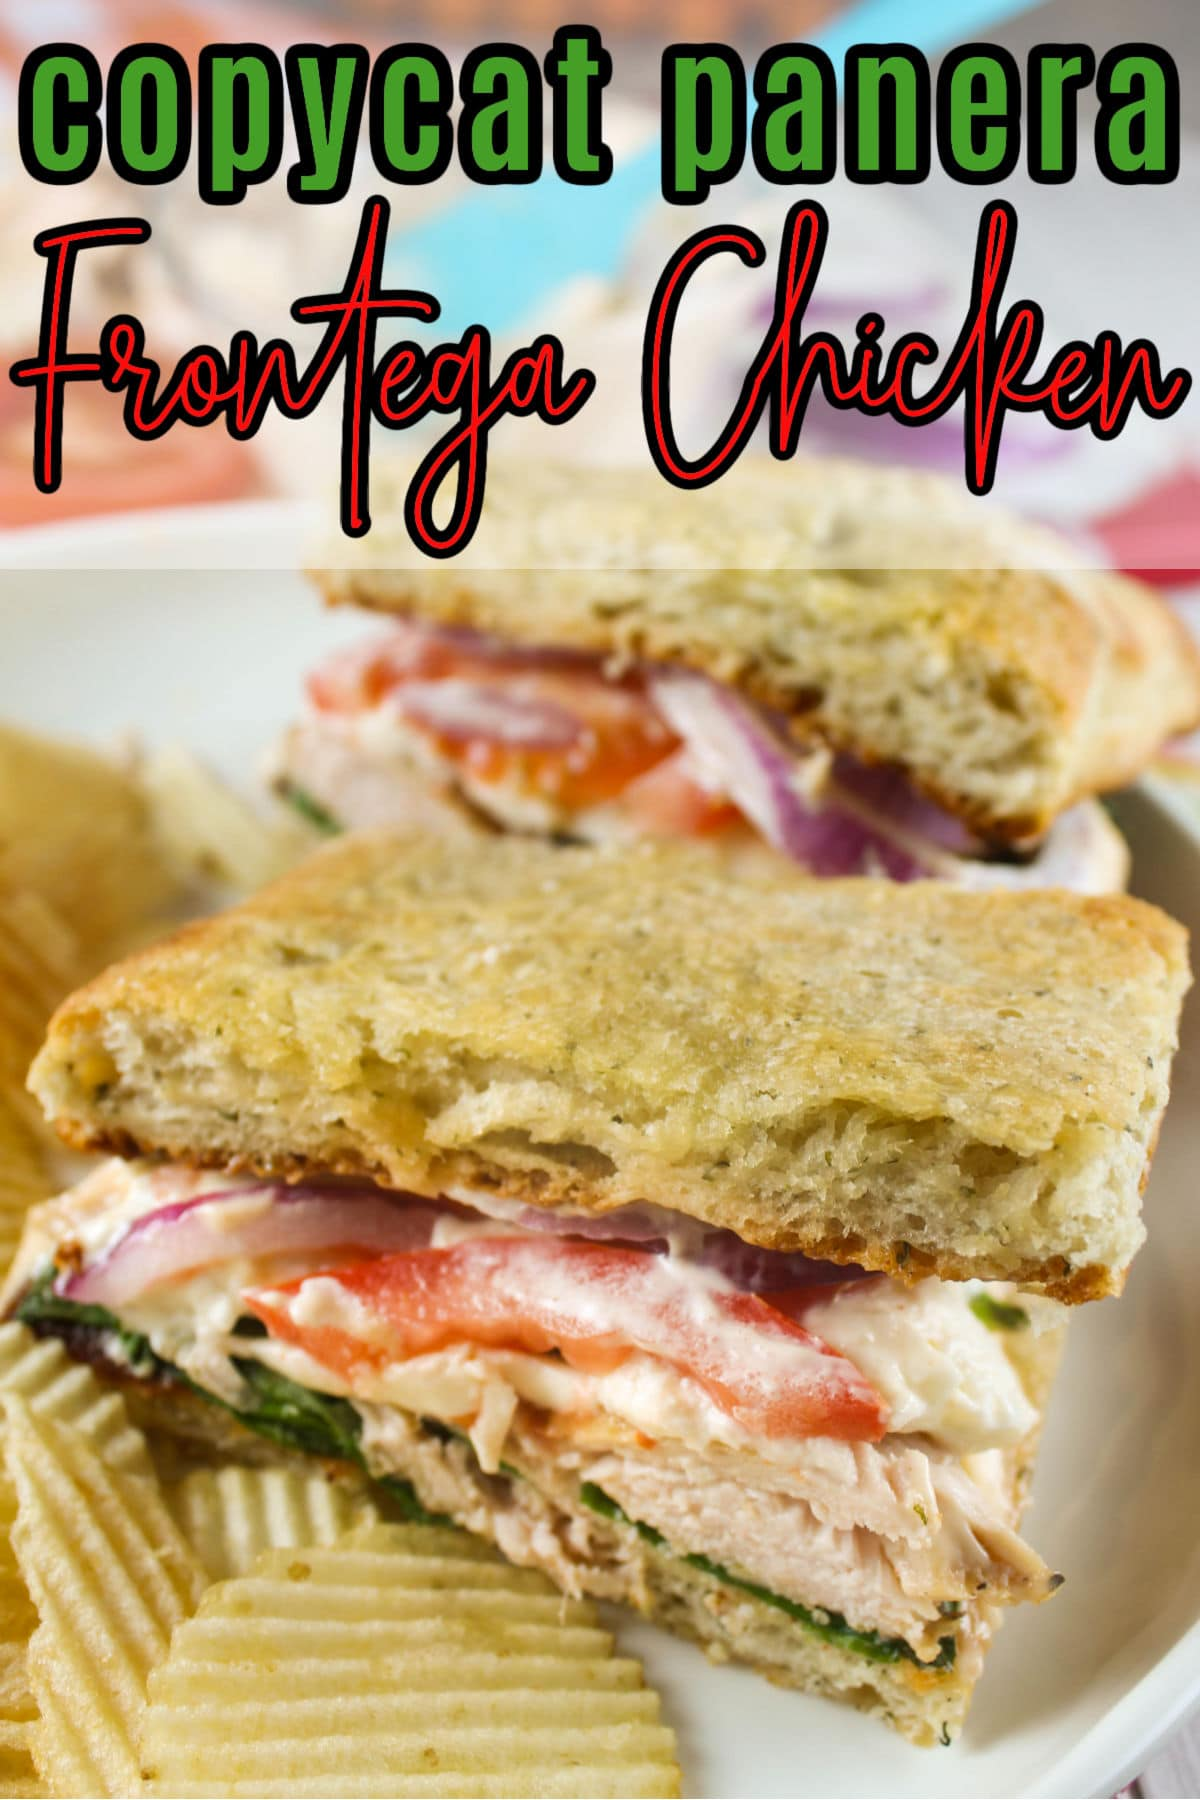 This copycat Panera Frontega Chicken Sandwich is filled with smoky pulled chicken, mozzarella, tomatoes and more all on crunchy focaccia bread. I made this at home with fresh baked bread and fresh ingredients and it was even more delicious than the Panera version!  via @foodhussy